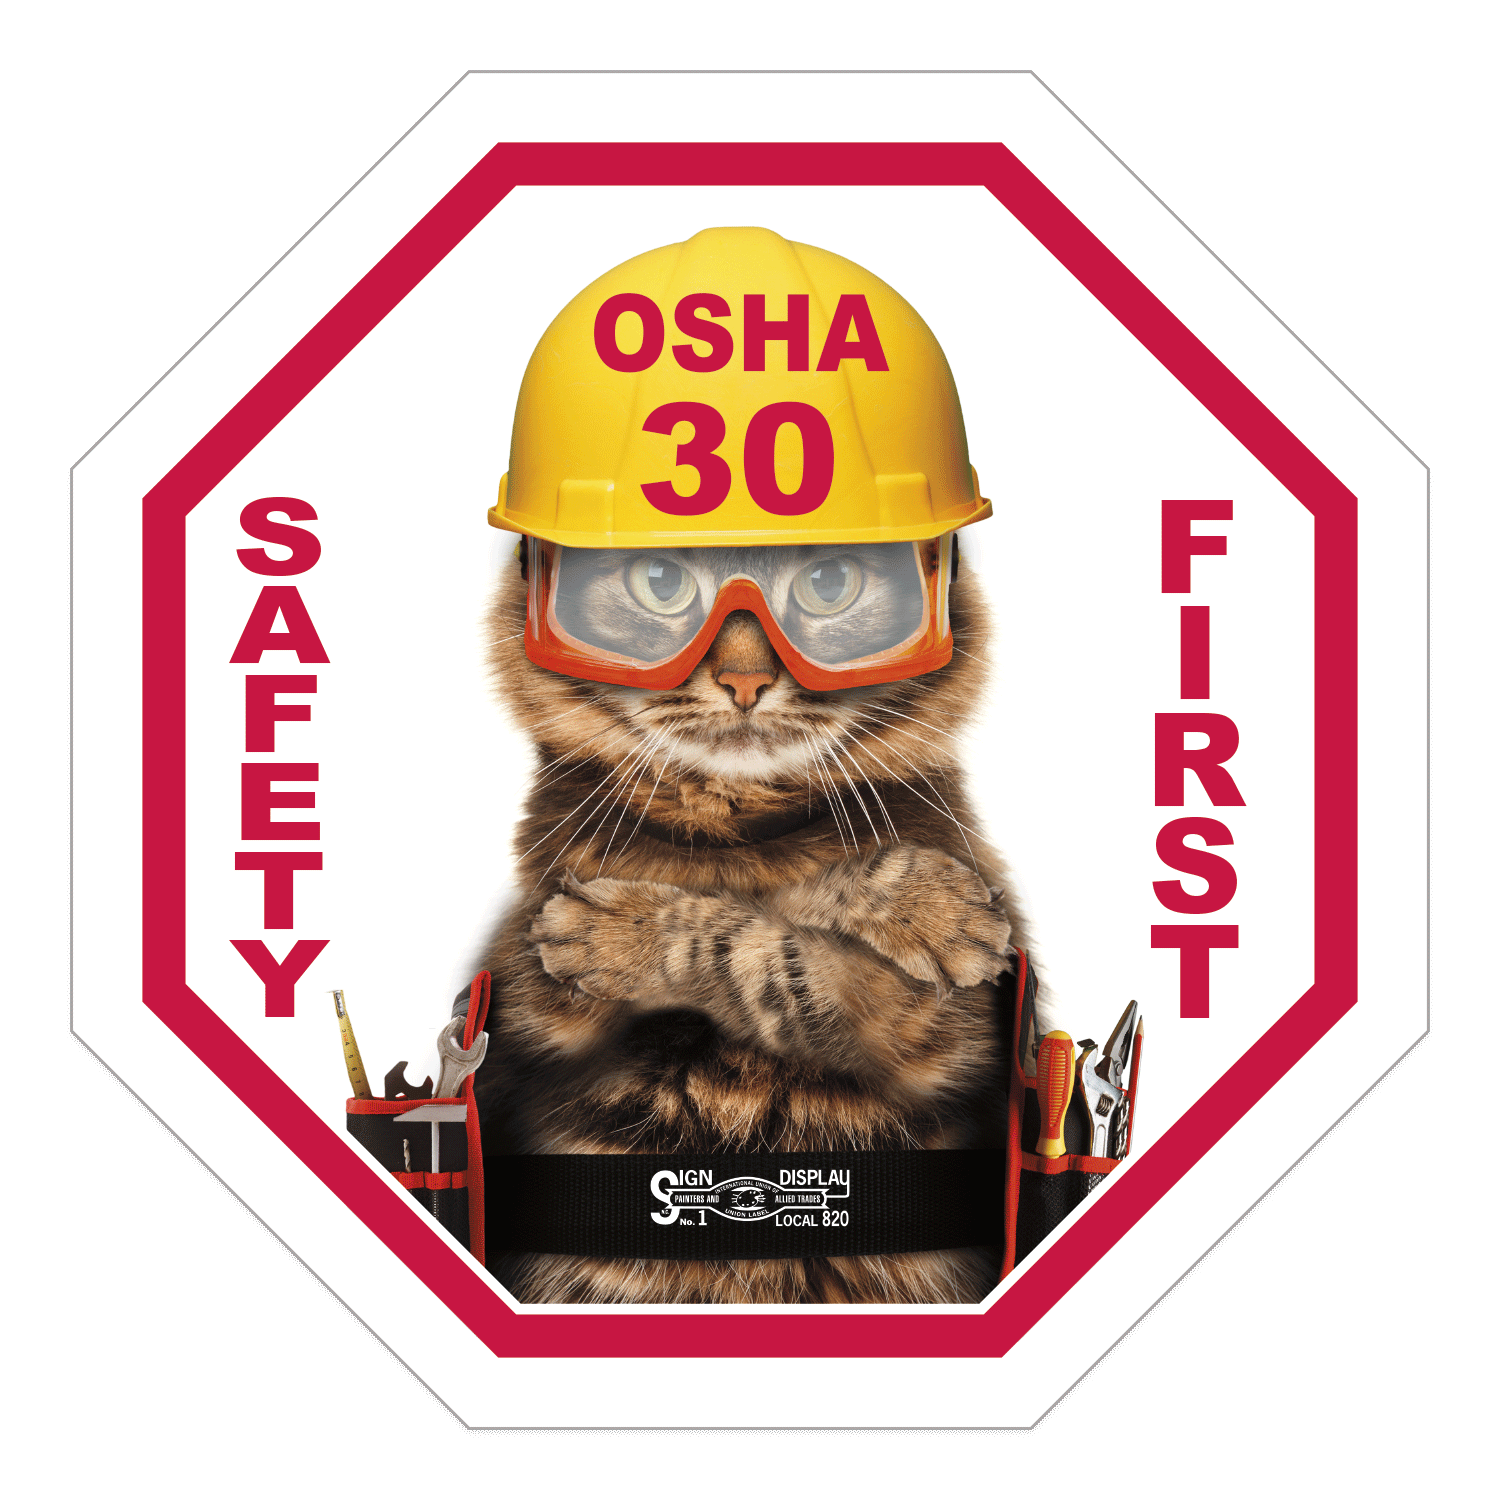 https://www.sswprinting.com/images/products_gallery_images/14205_OSHA-30_hi-res.png